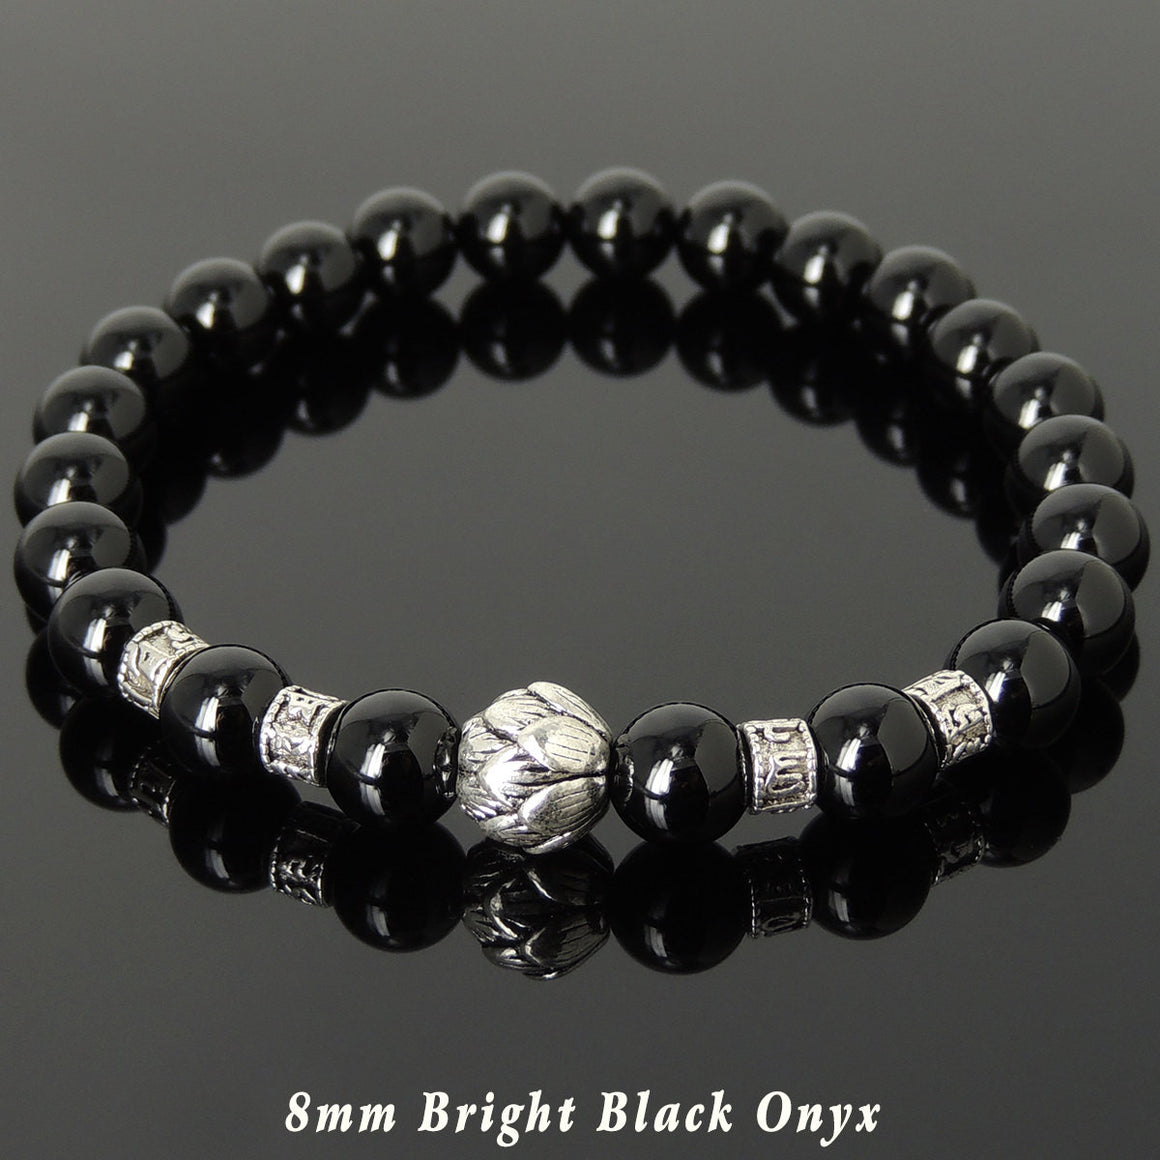 Bright Black Onyx Healing Gemstone Bracelet with Tibetan Silver Lotus Bead & OM Meditation Spacer Beads - Handmade by Gem & Silver TSB309